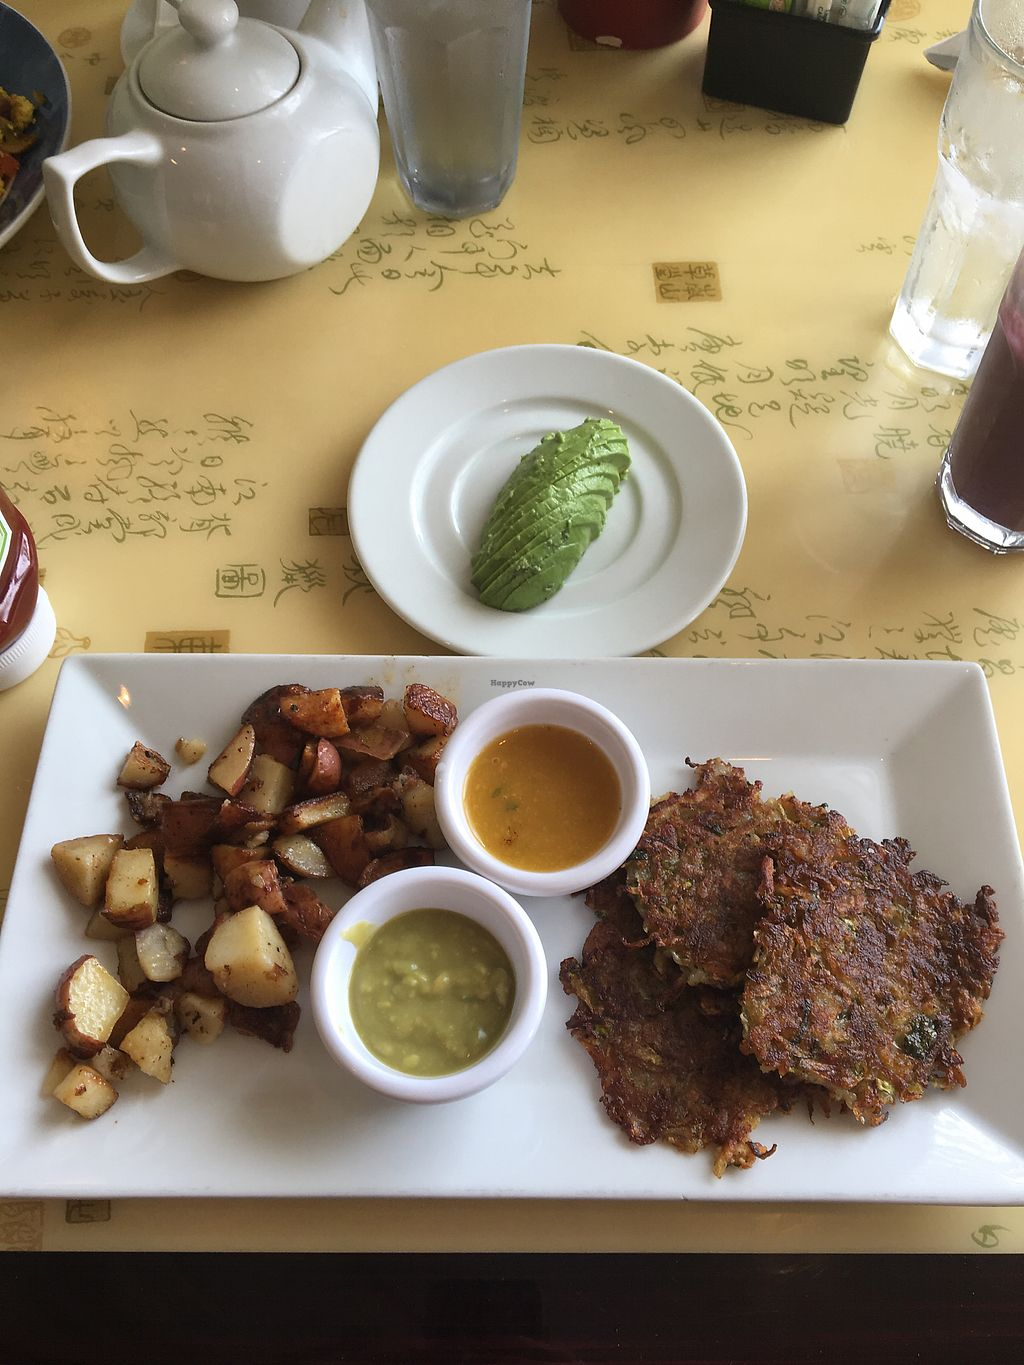 """Photo of Cafe Evergreen  by <a href=""""/members/profile/caittt"""">caittt</a> <br/>Zucchini potato pancakes with a side of avocado  <br/> April 15, 2018  - <a href='/contact/abuse/image/45031/386335'>Report</a>"""